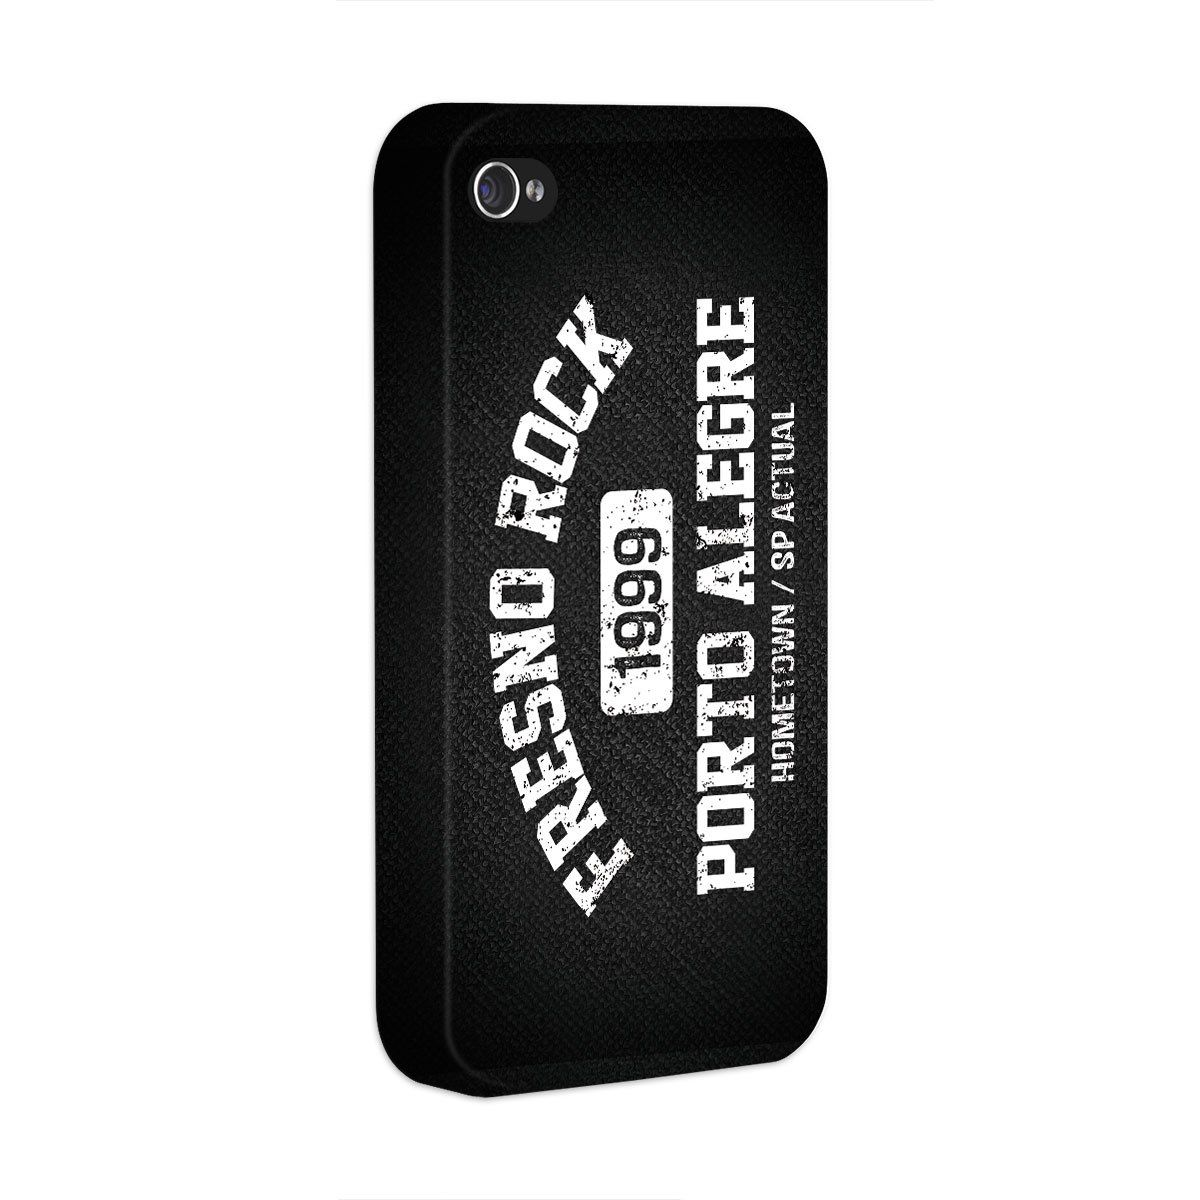 Capa para iPhone 4/4S Fresno Rock